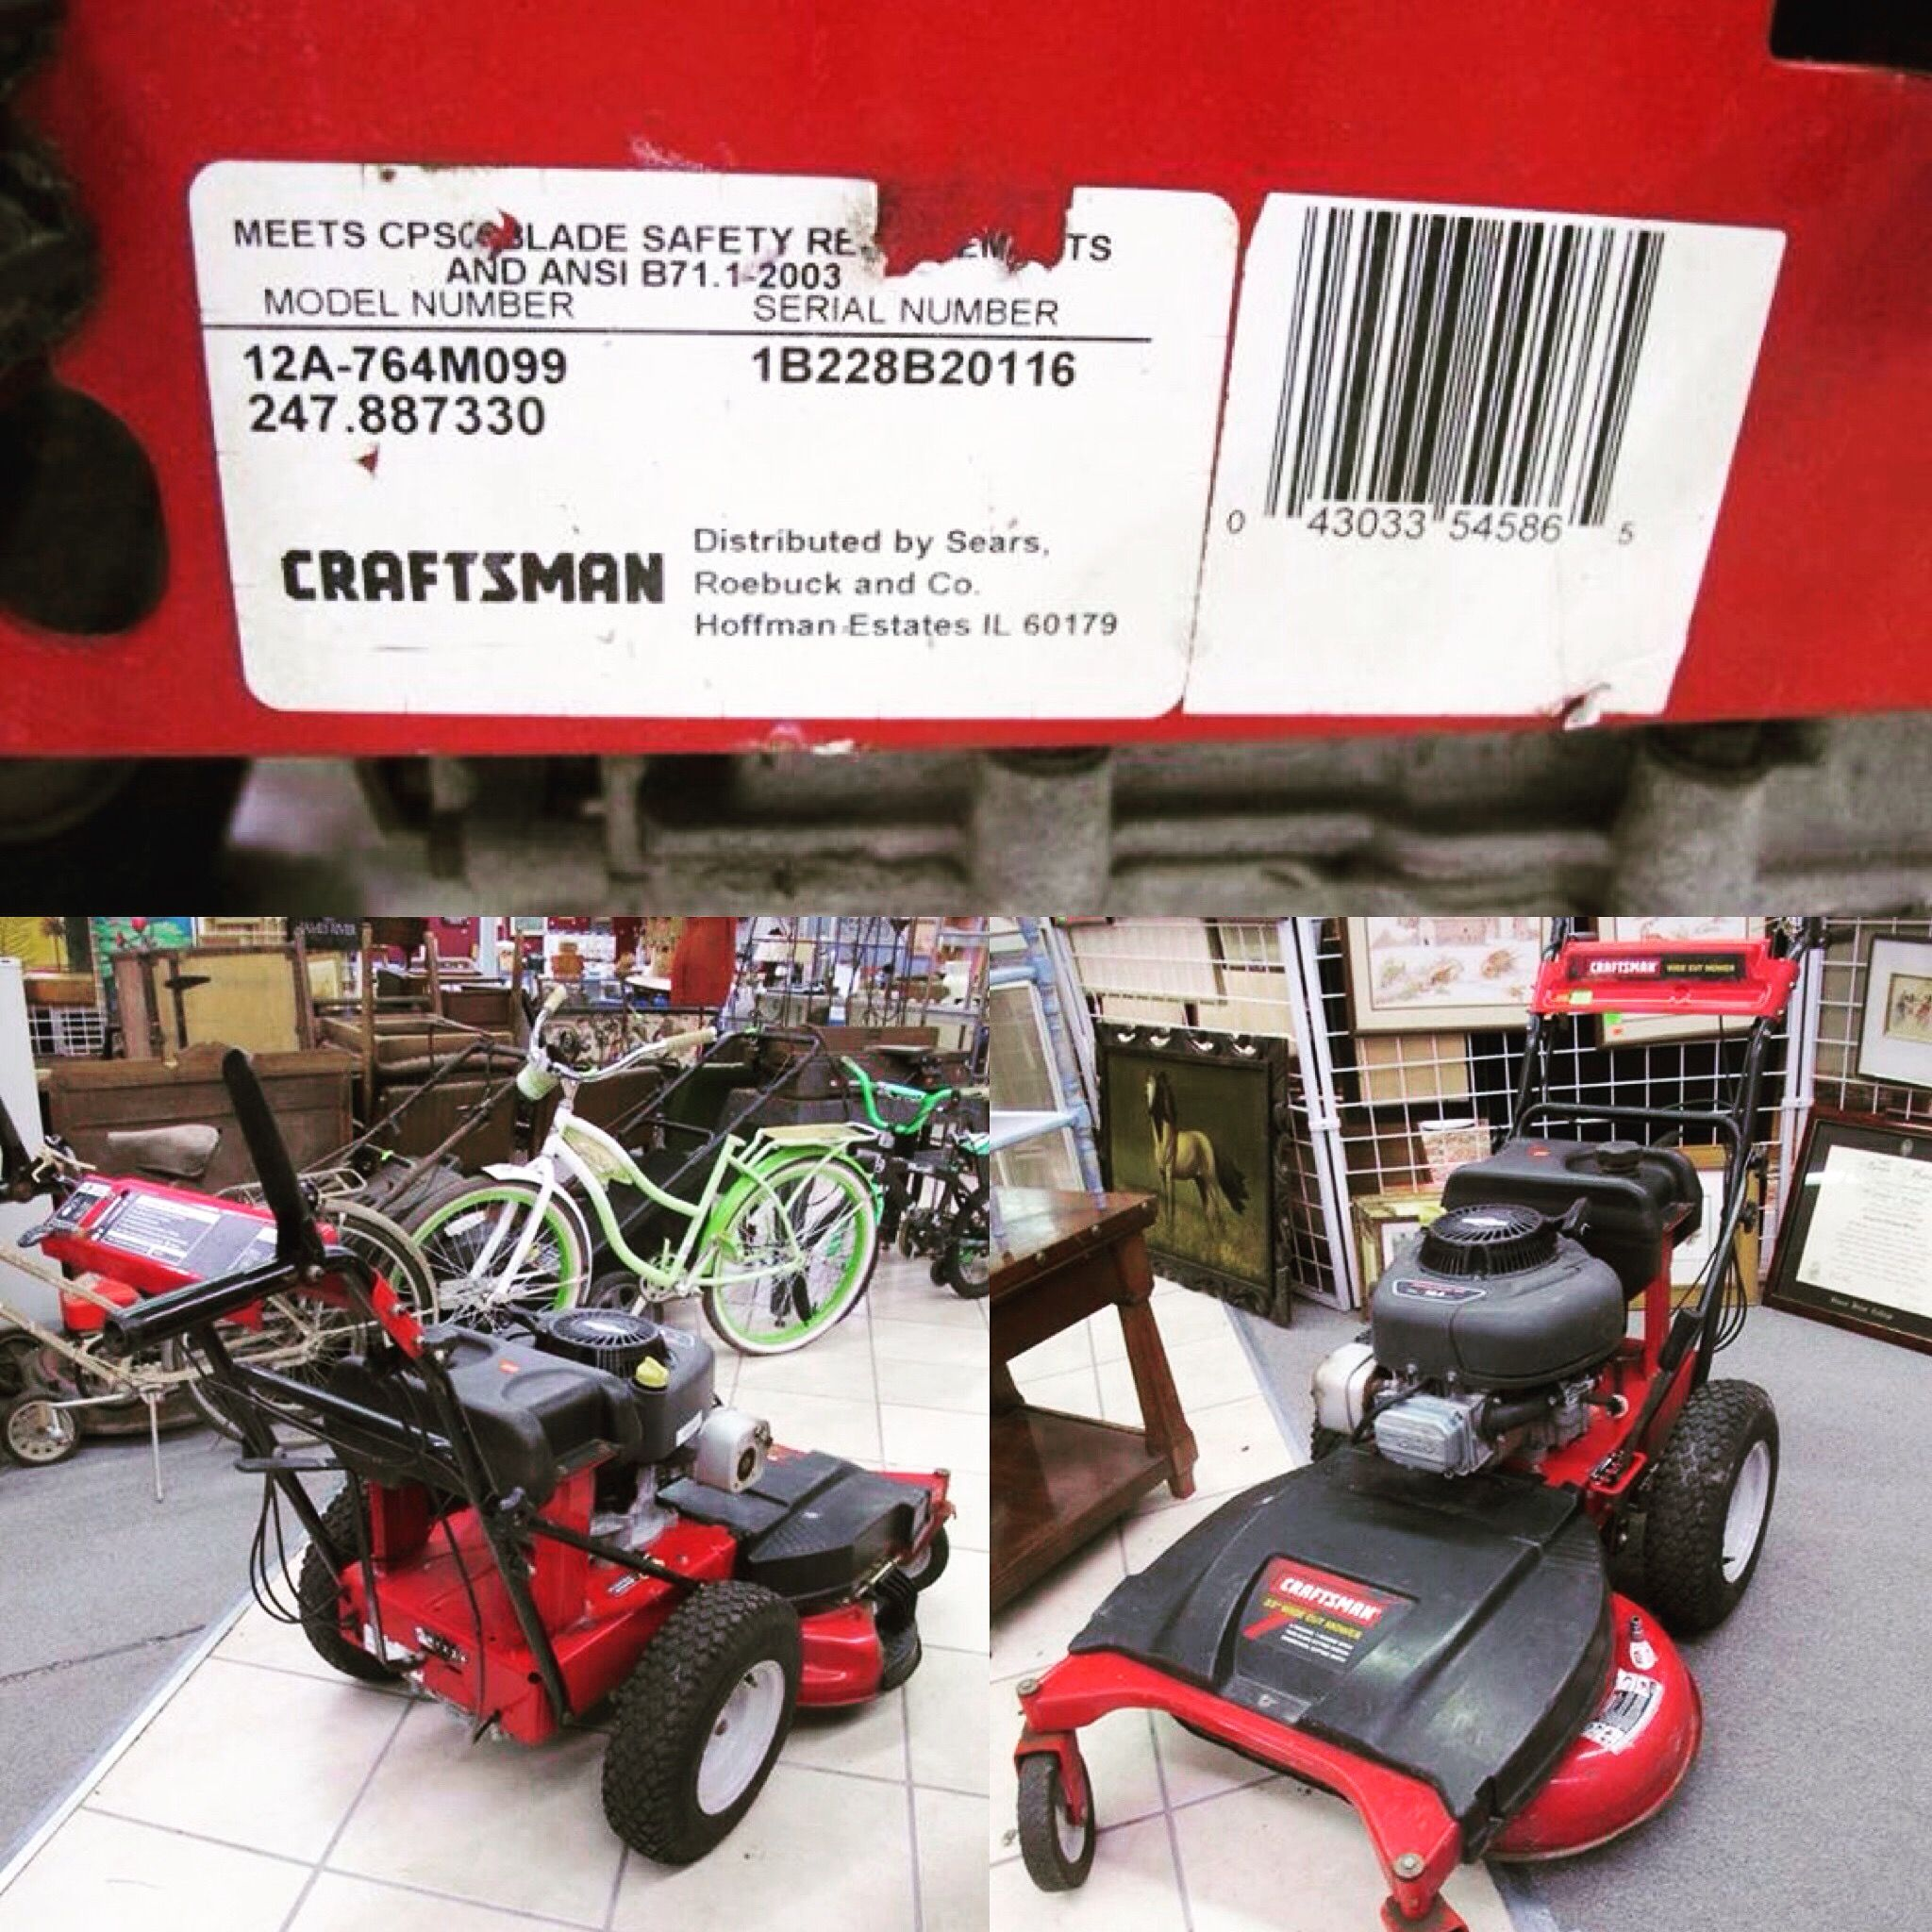 briggs and stratton push mower serial number